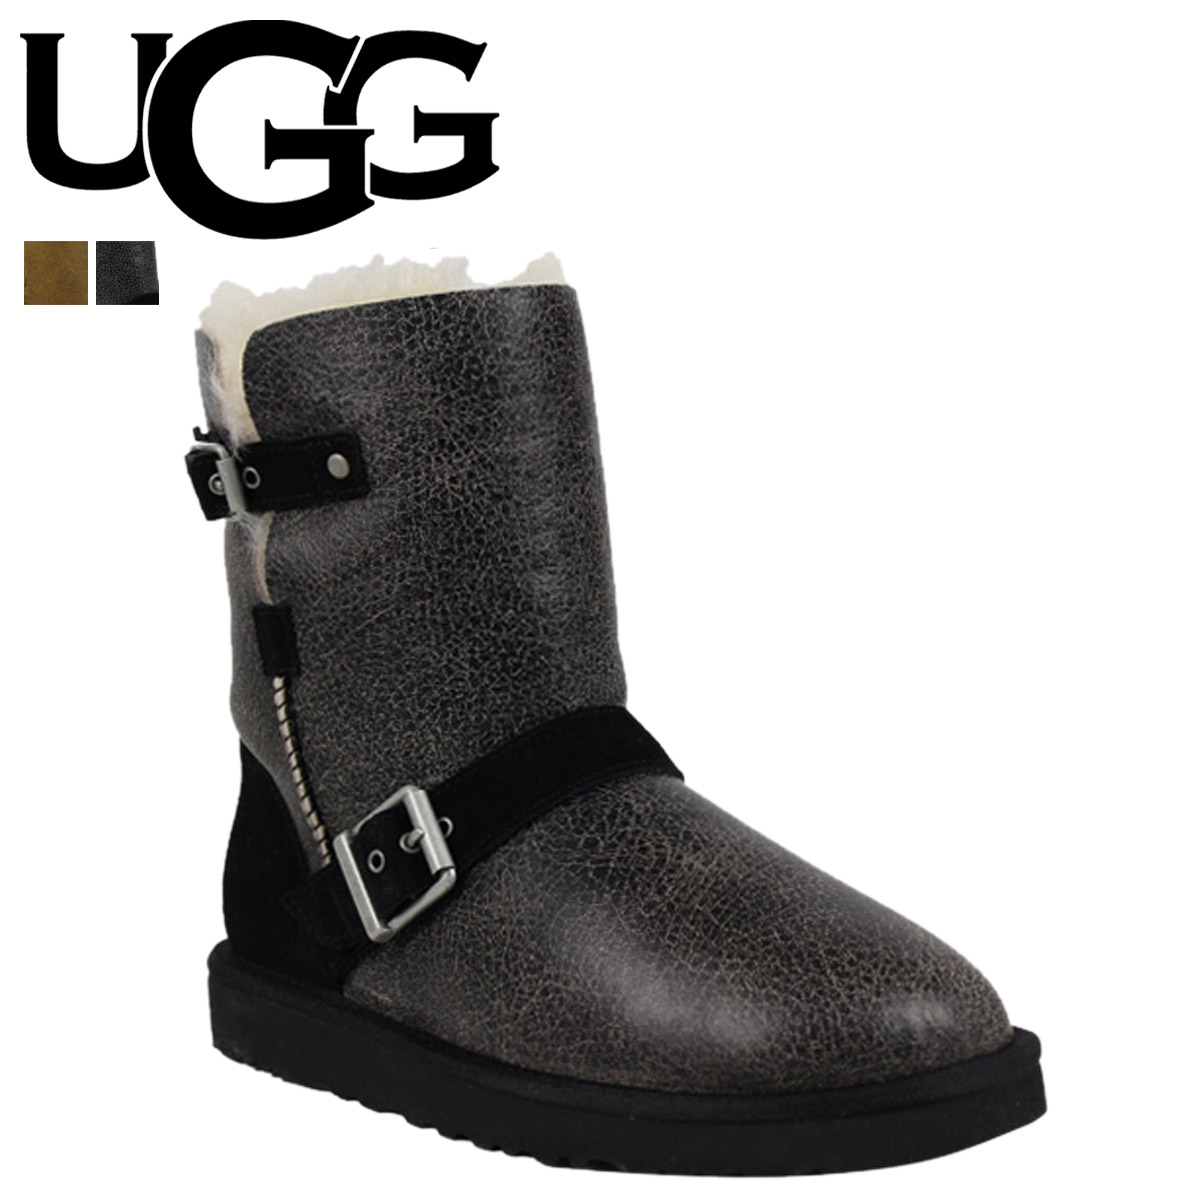 Is amazing in the winter warm UGG can wear cool even in the summer for that better breathability.